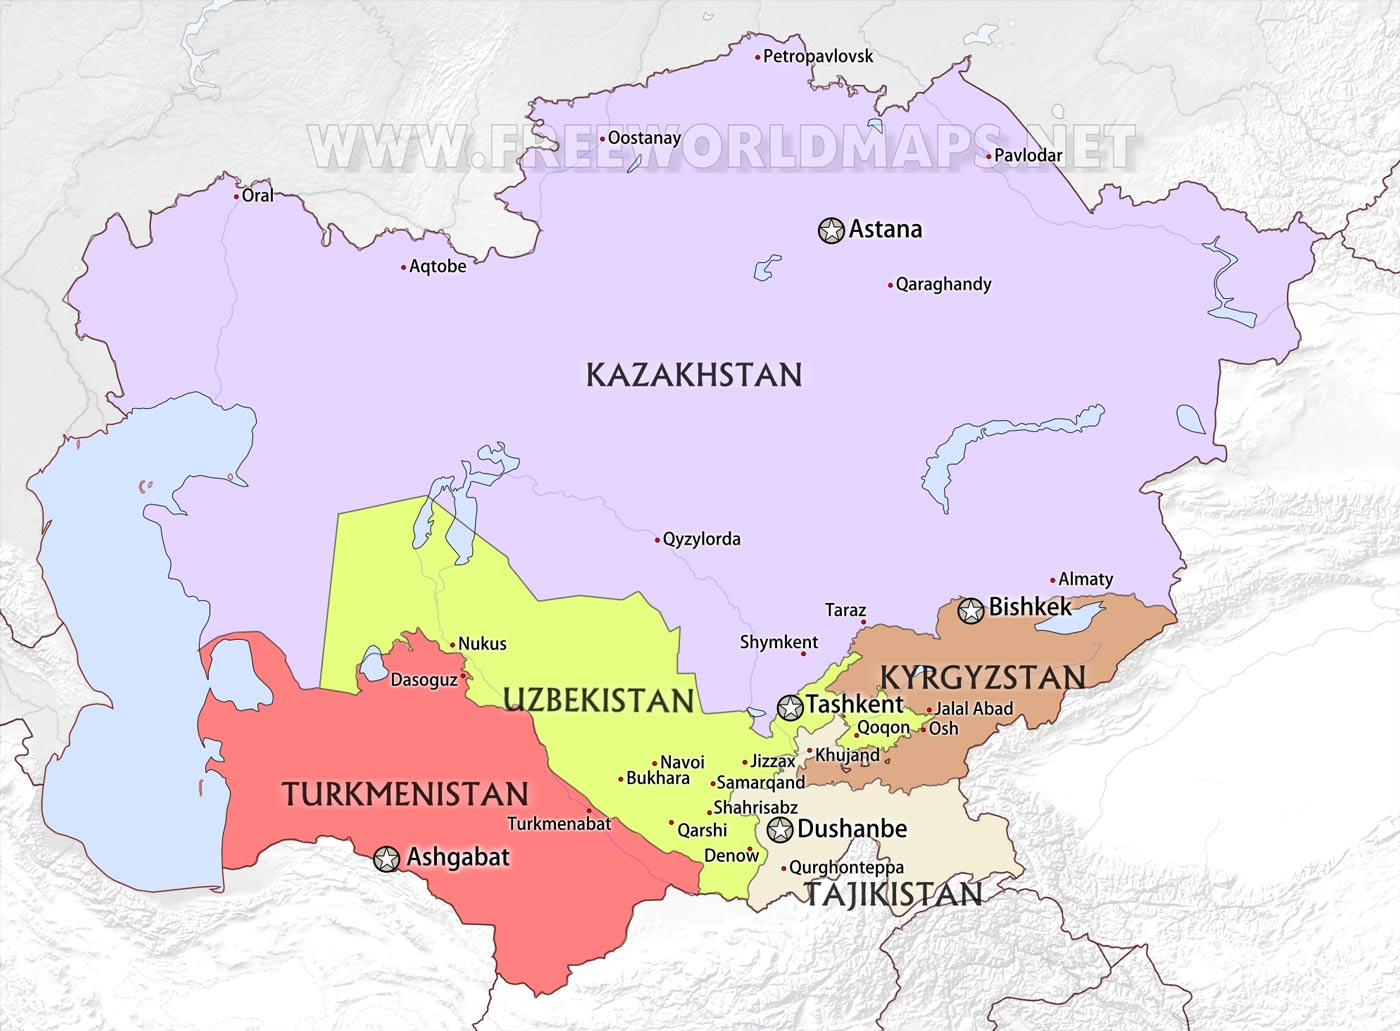 Central asia maps central asia countries map central asia cities gumiabroncs